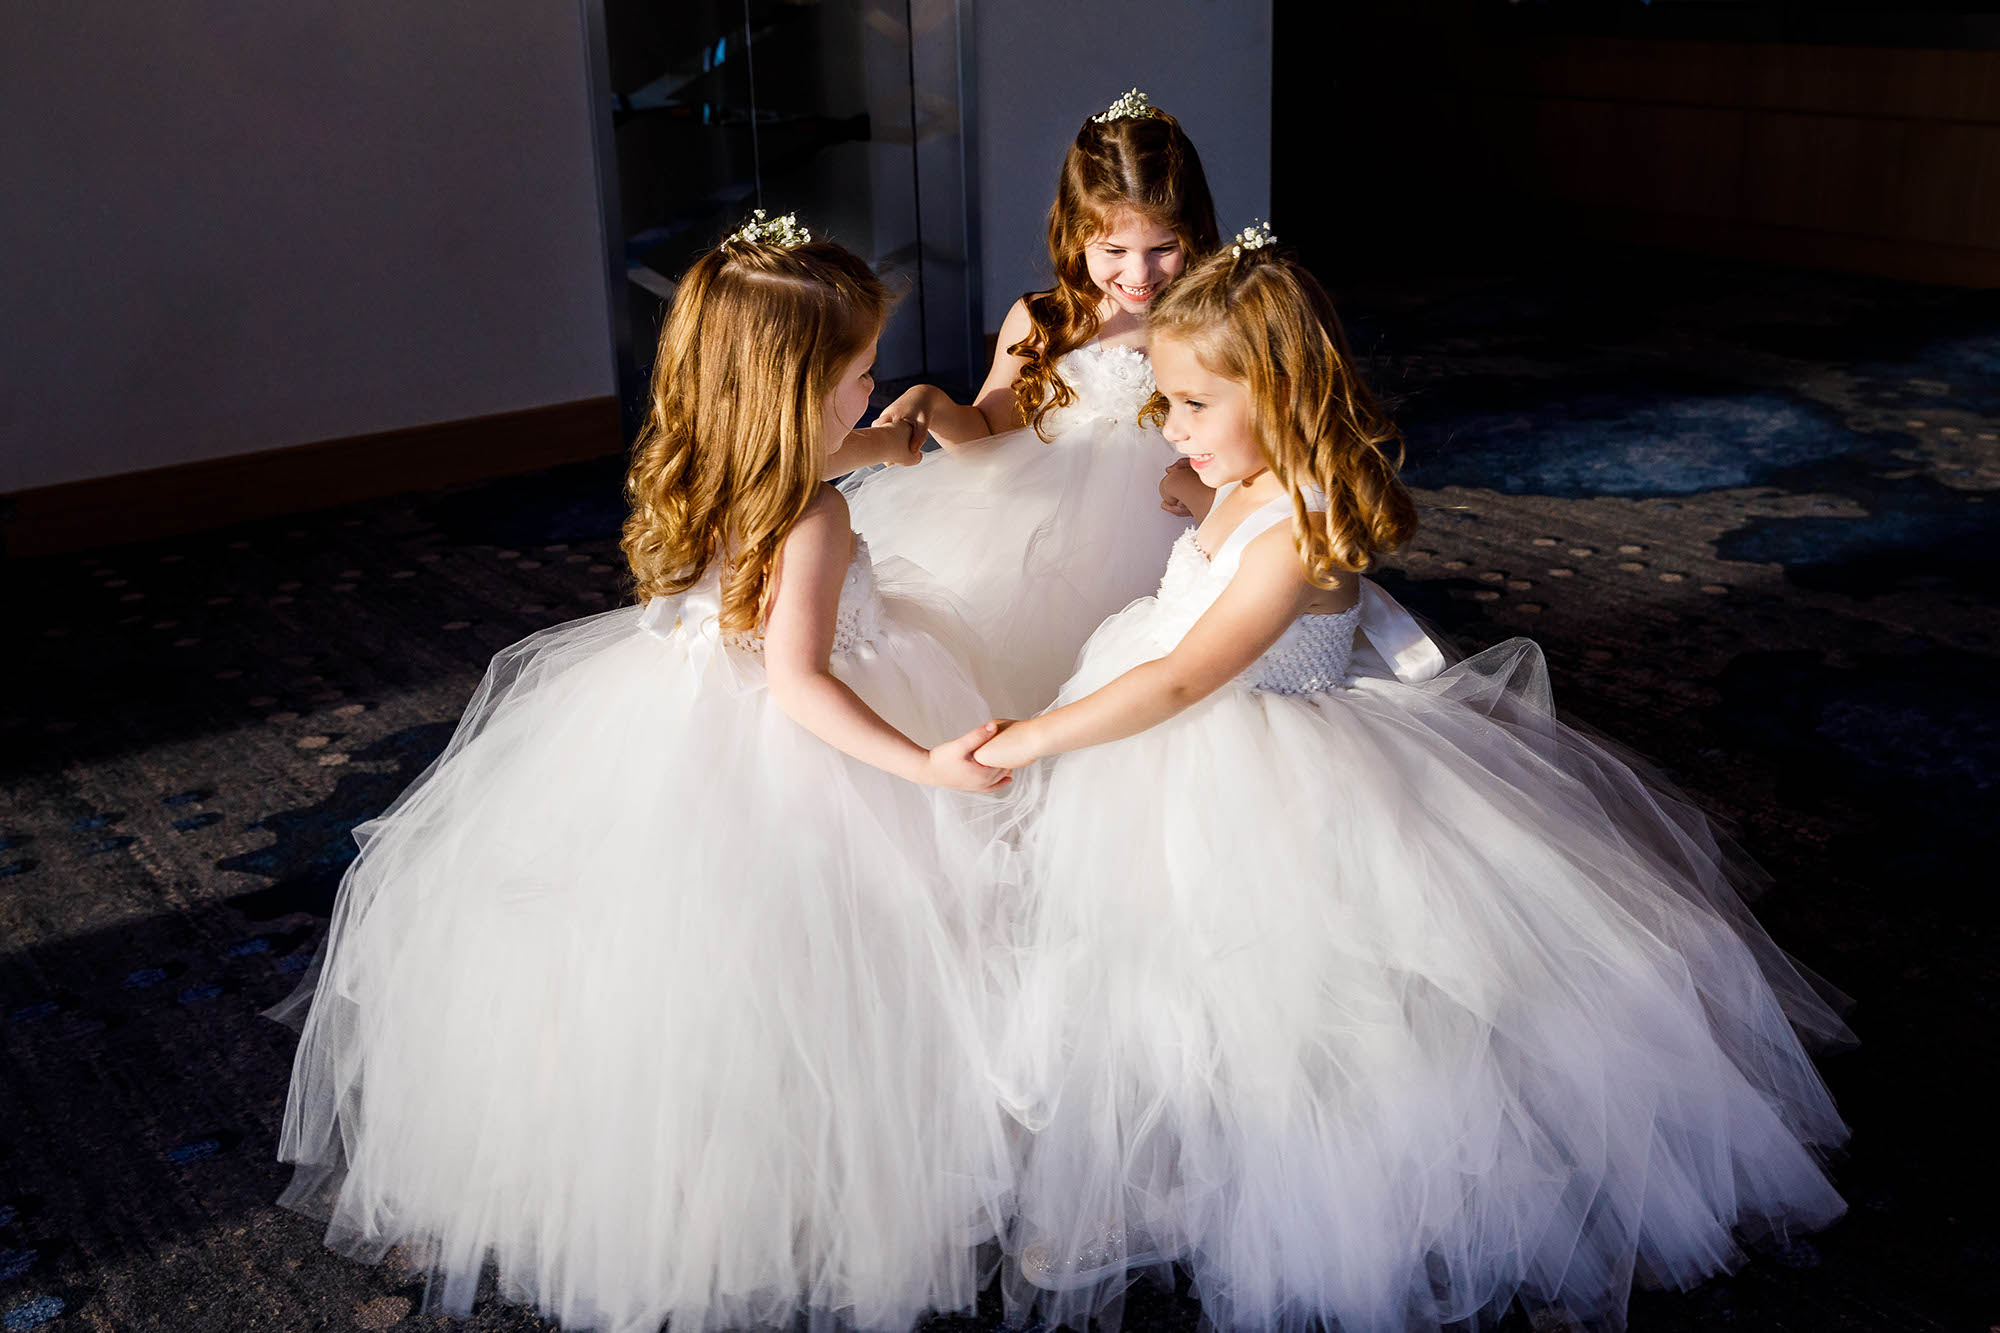 Flower girls playing and spinning in the sunlight shining through the windows at The Hilton Downtown Cleveland.